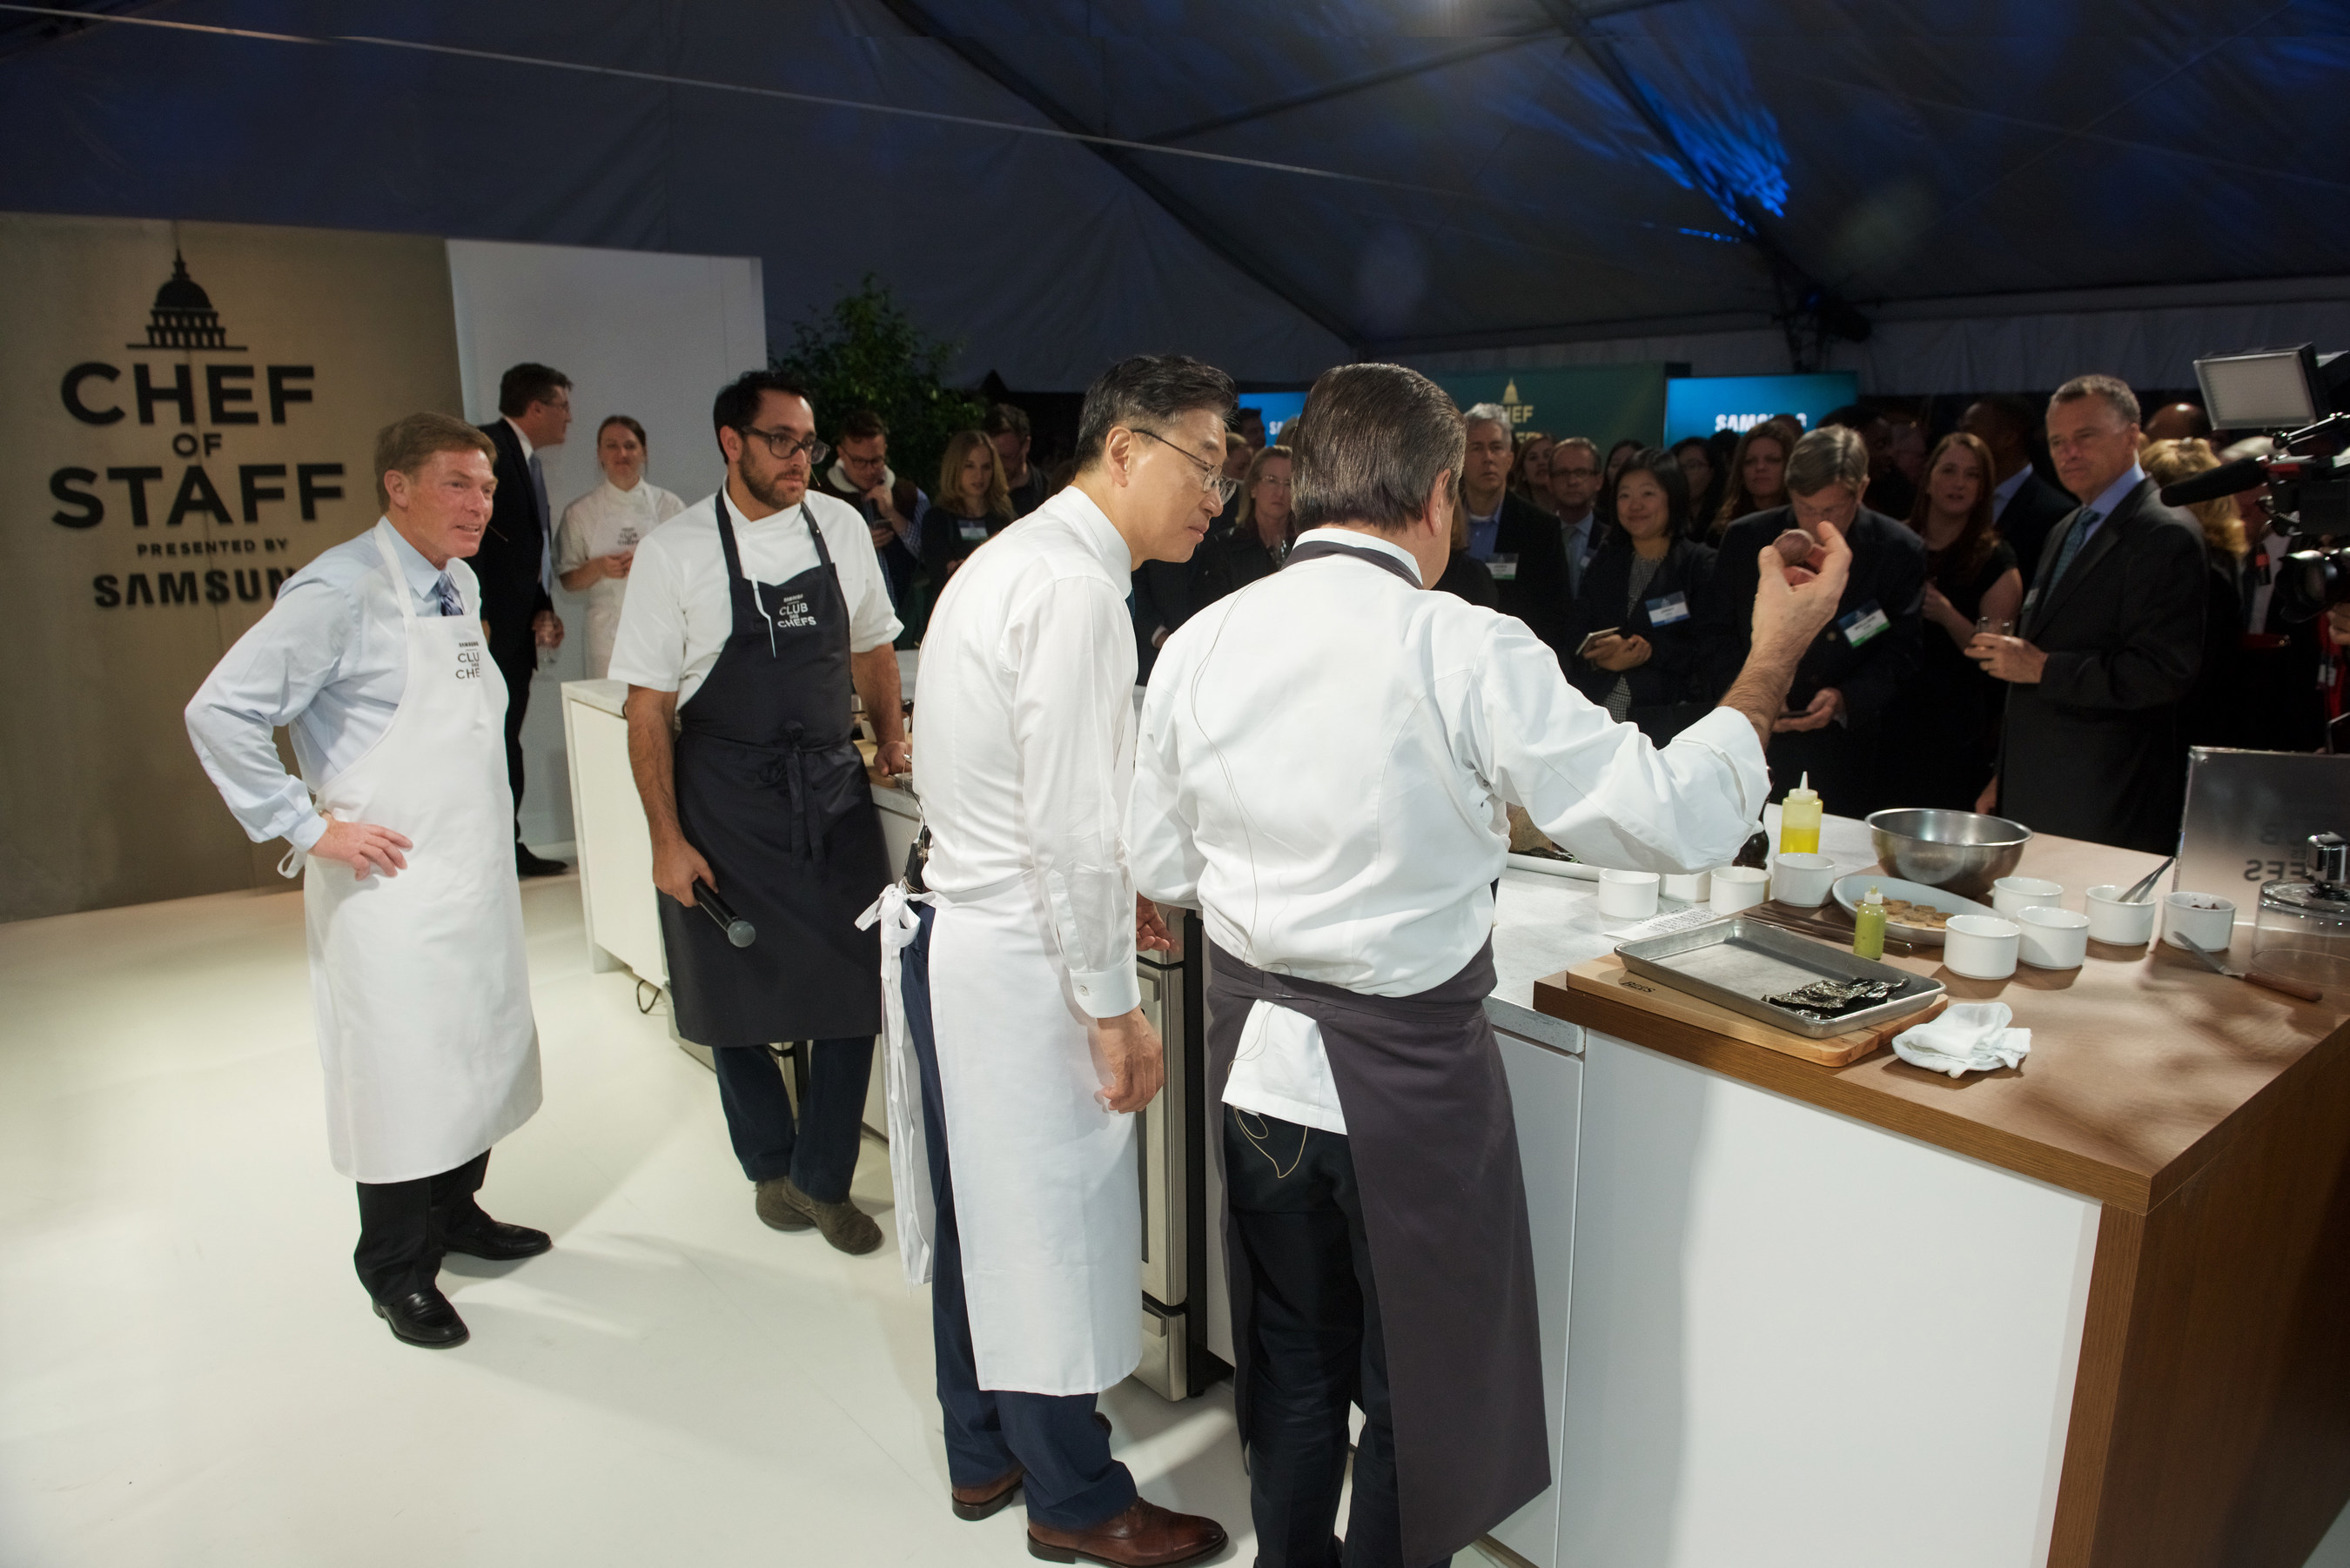 Pictured from left to right: Ken Fisher, Chairman and CEO Fisher House Foundation, BK Yoon, President and CEO, Consumer Electronics, Samsung Electronics, Daniel Boulud, Chef DANIEL